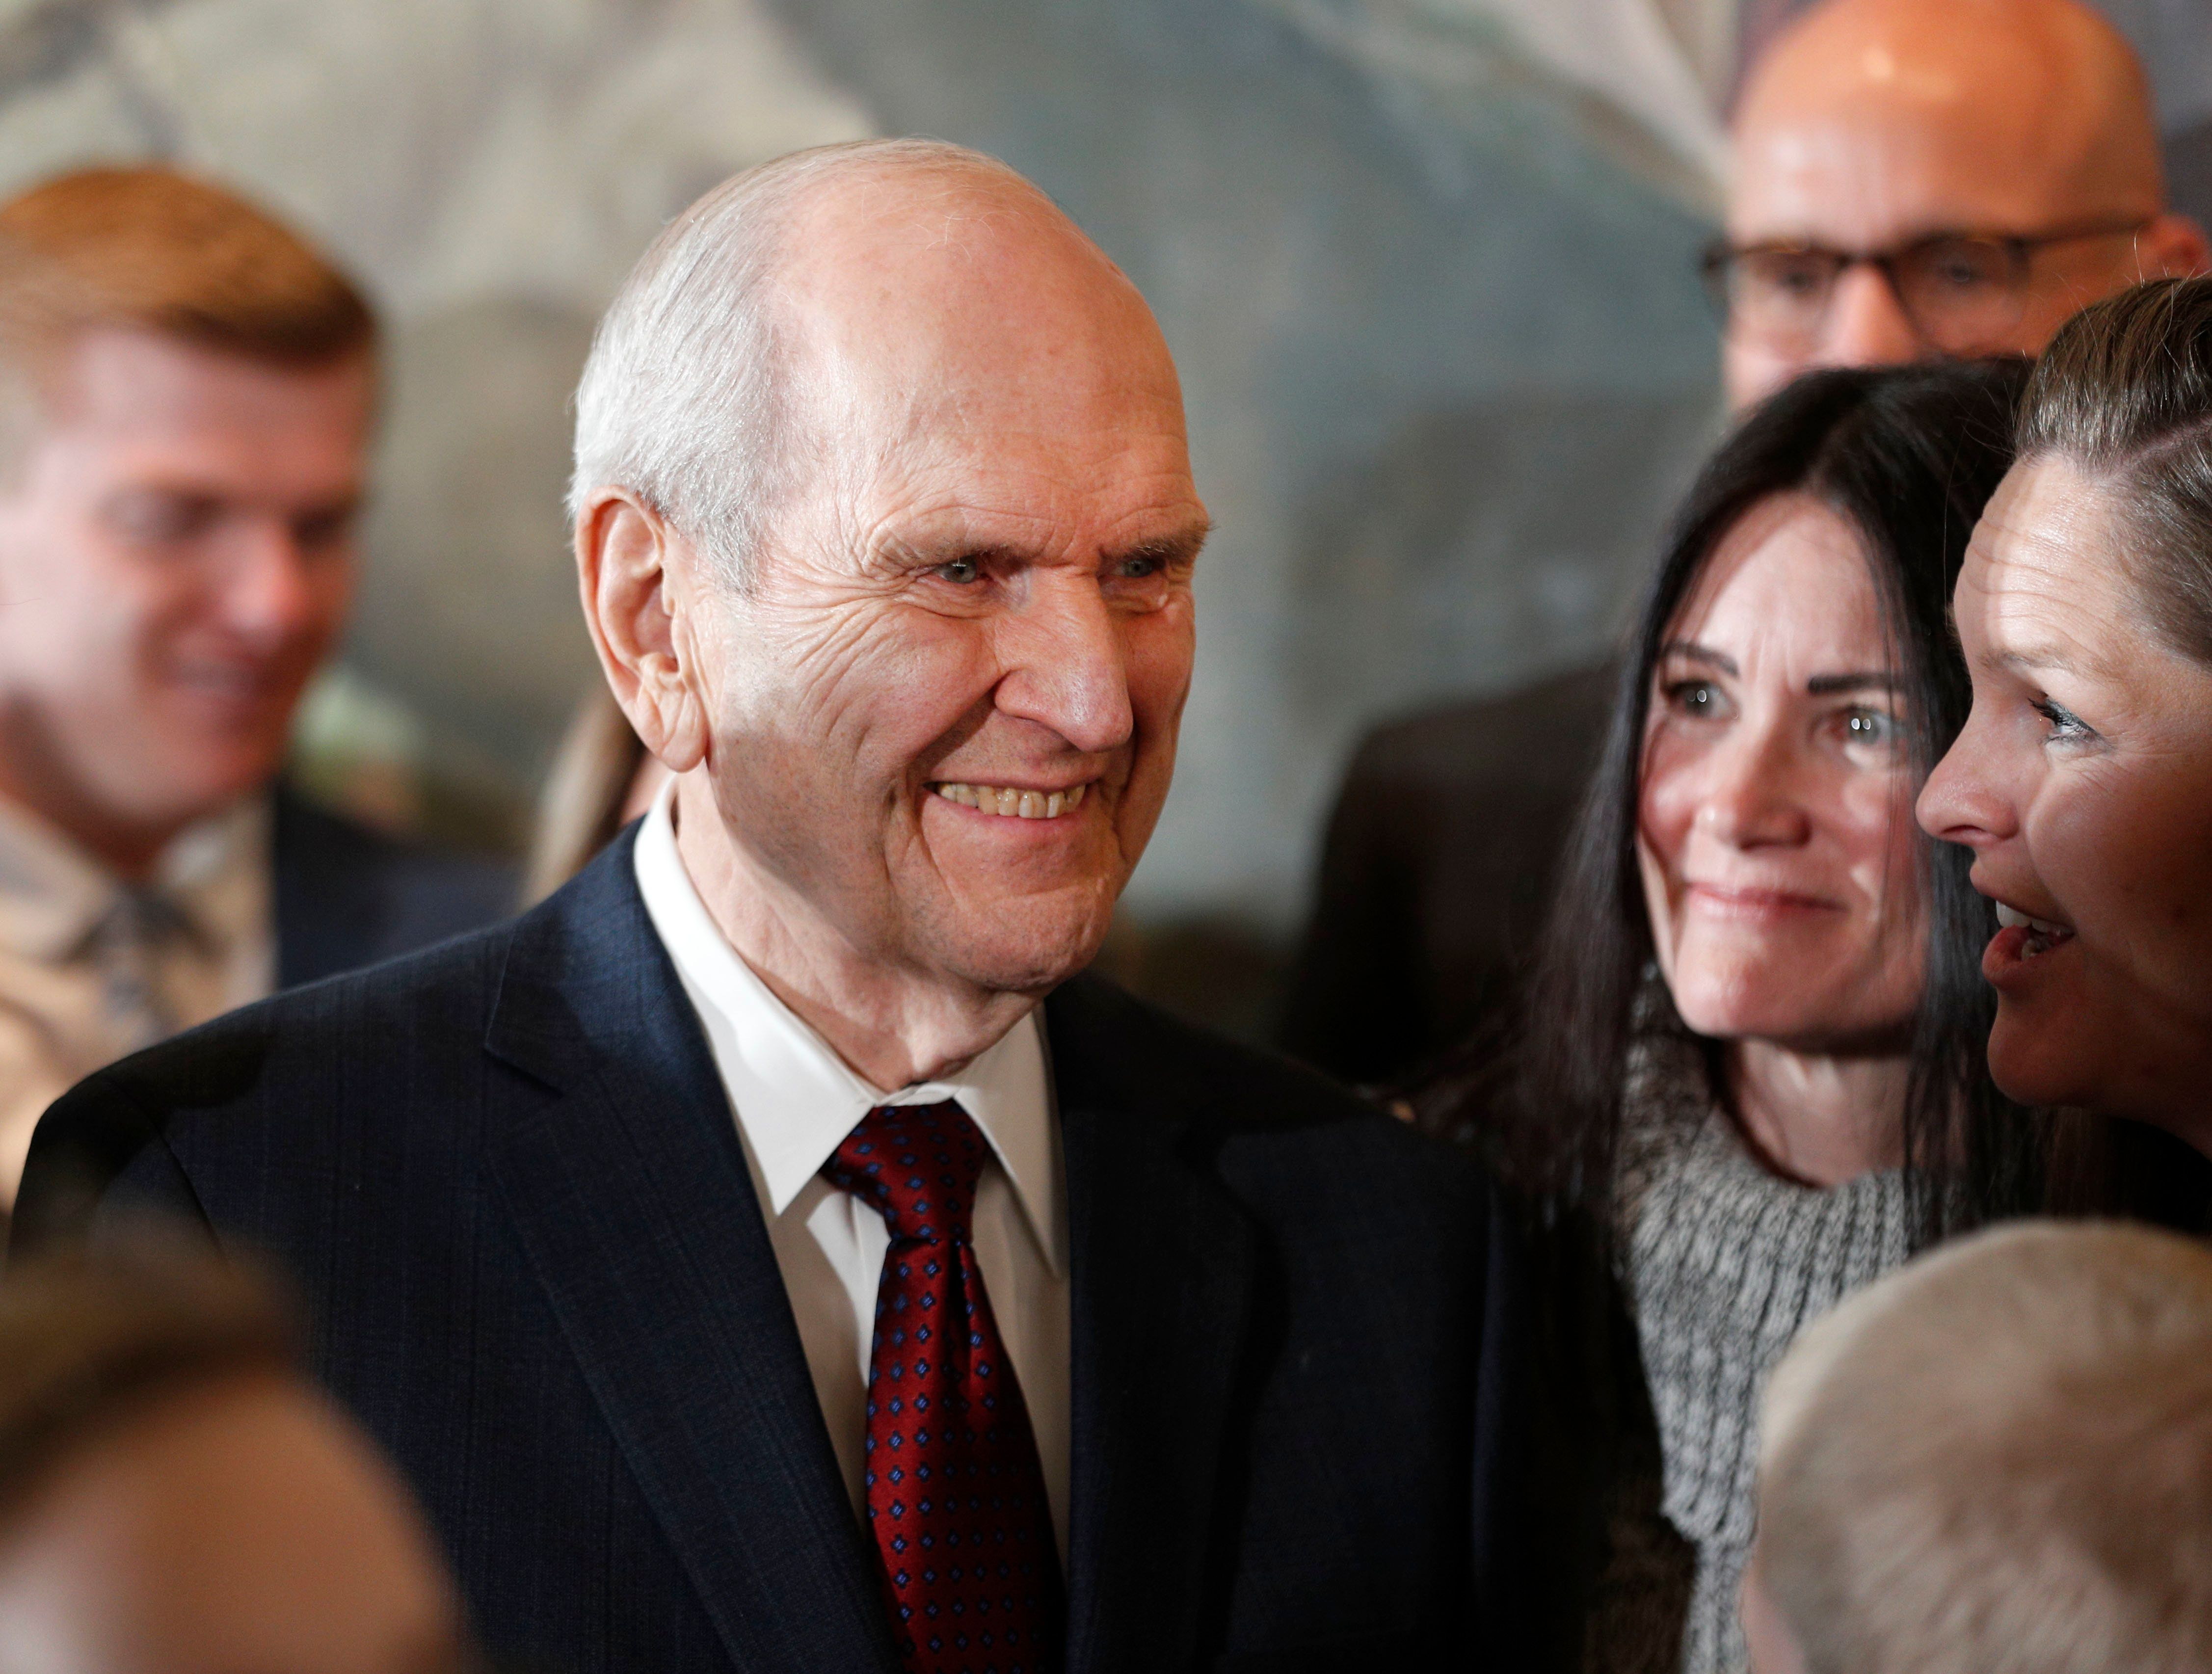 Russell M. Nelson, 93, the new president of the Church of Jesus Christ of Latter-Day Saints, greets family members after a pr